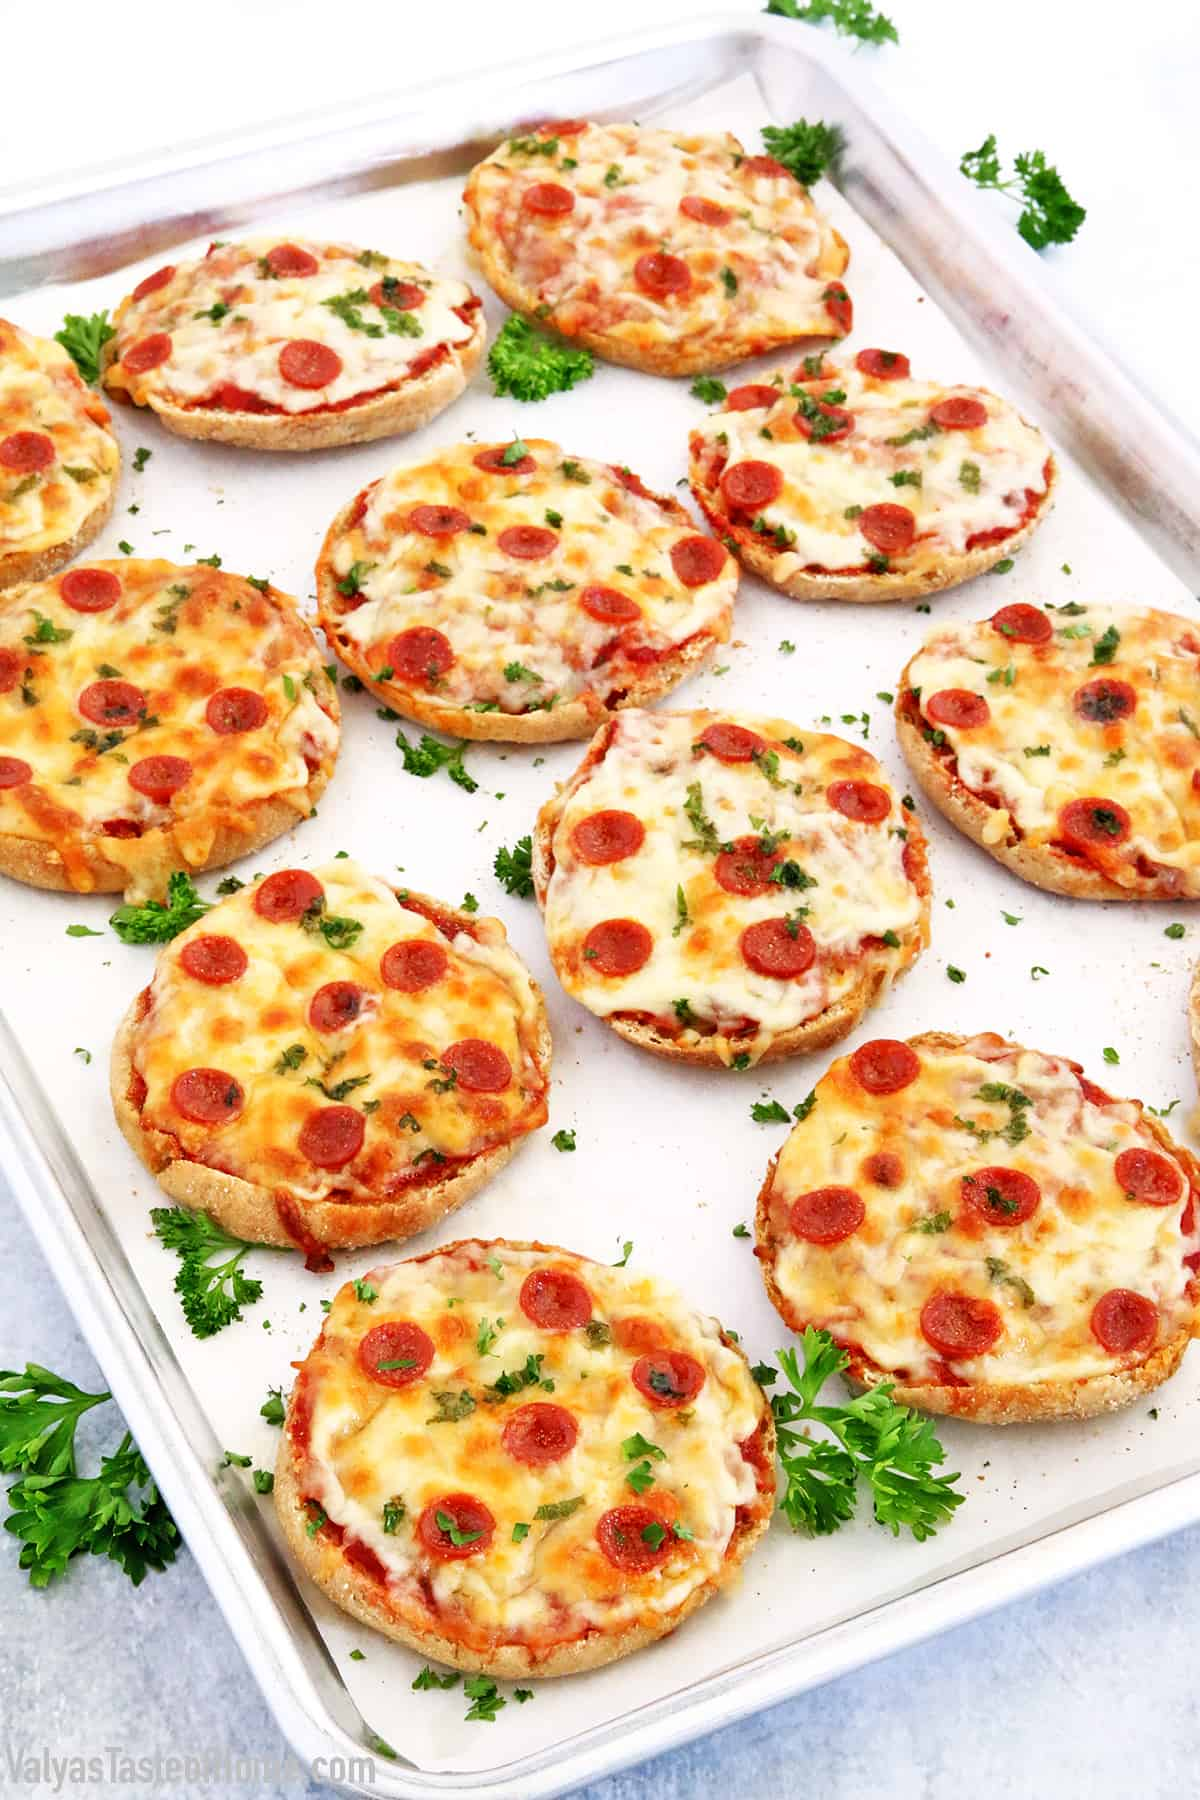 These English Muffin Mini Pepperoni Pizzas is a great project for the kiddos. It takes just a few basic ingredients, but the little ones love making them. They feel like they cooked their own pizza!